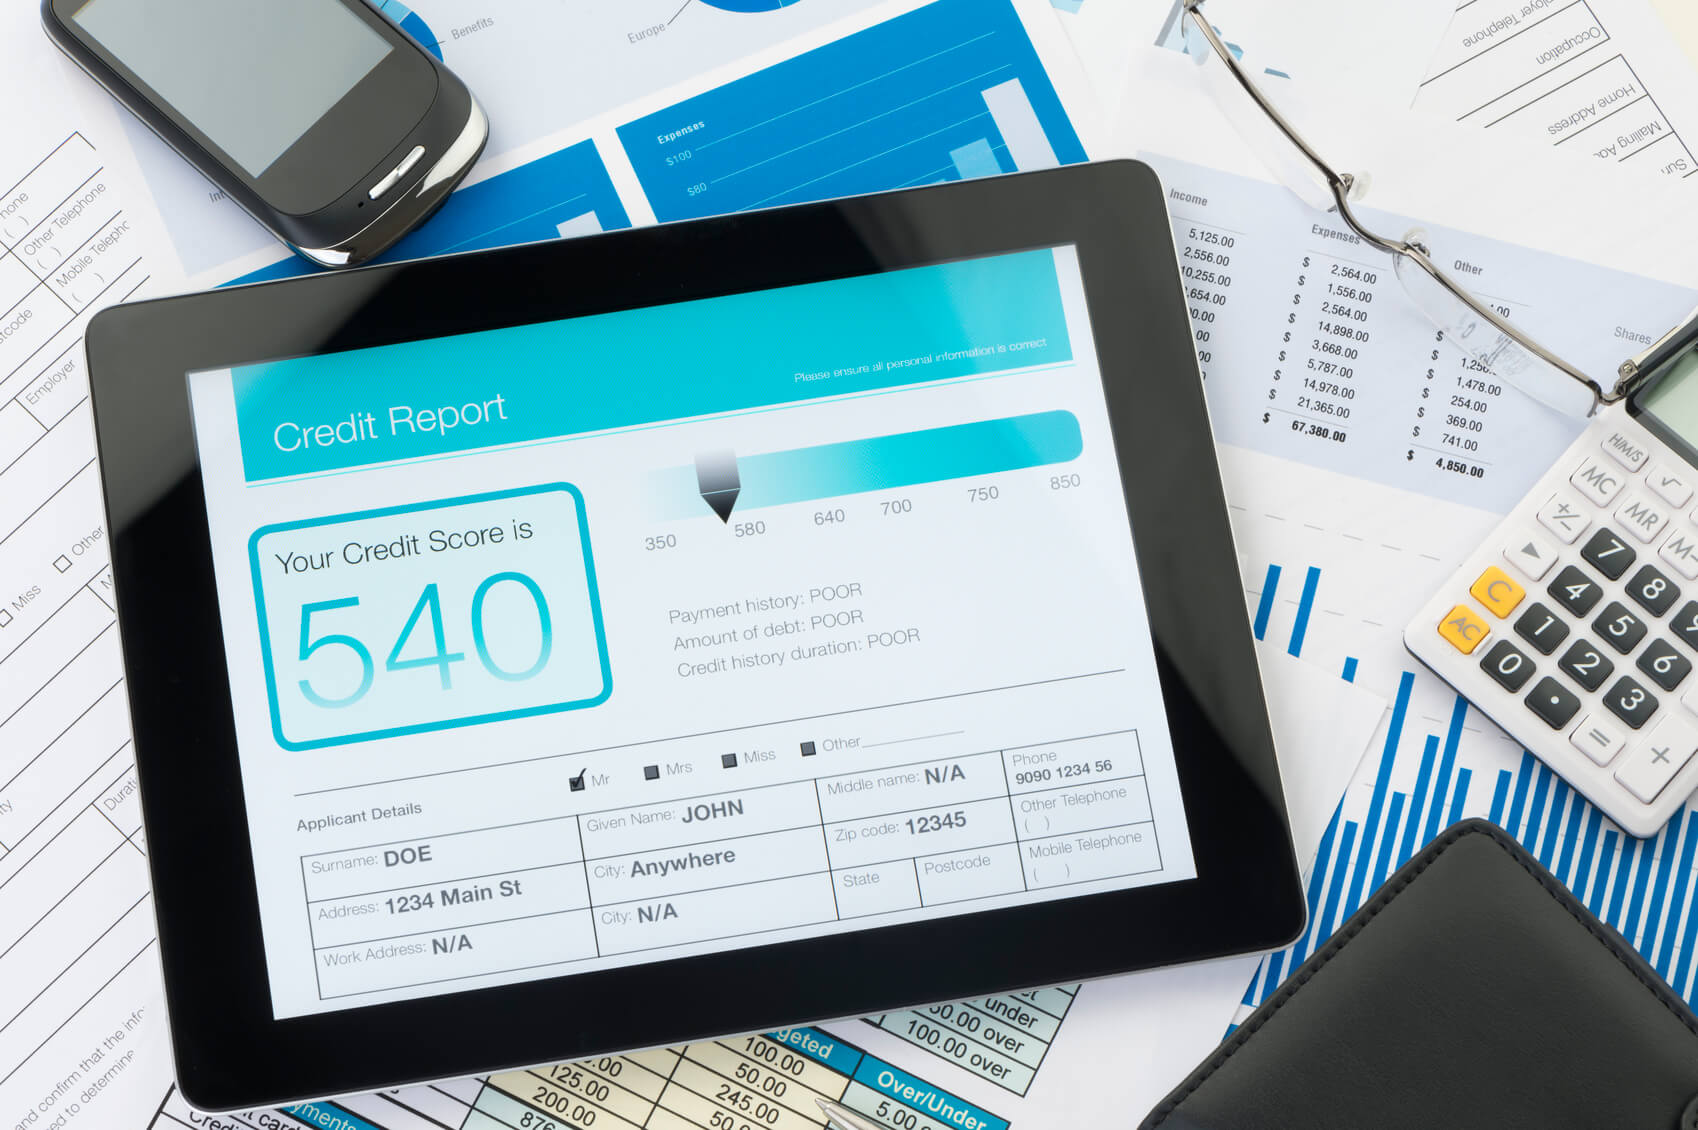 Credit score on a tablet